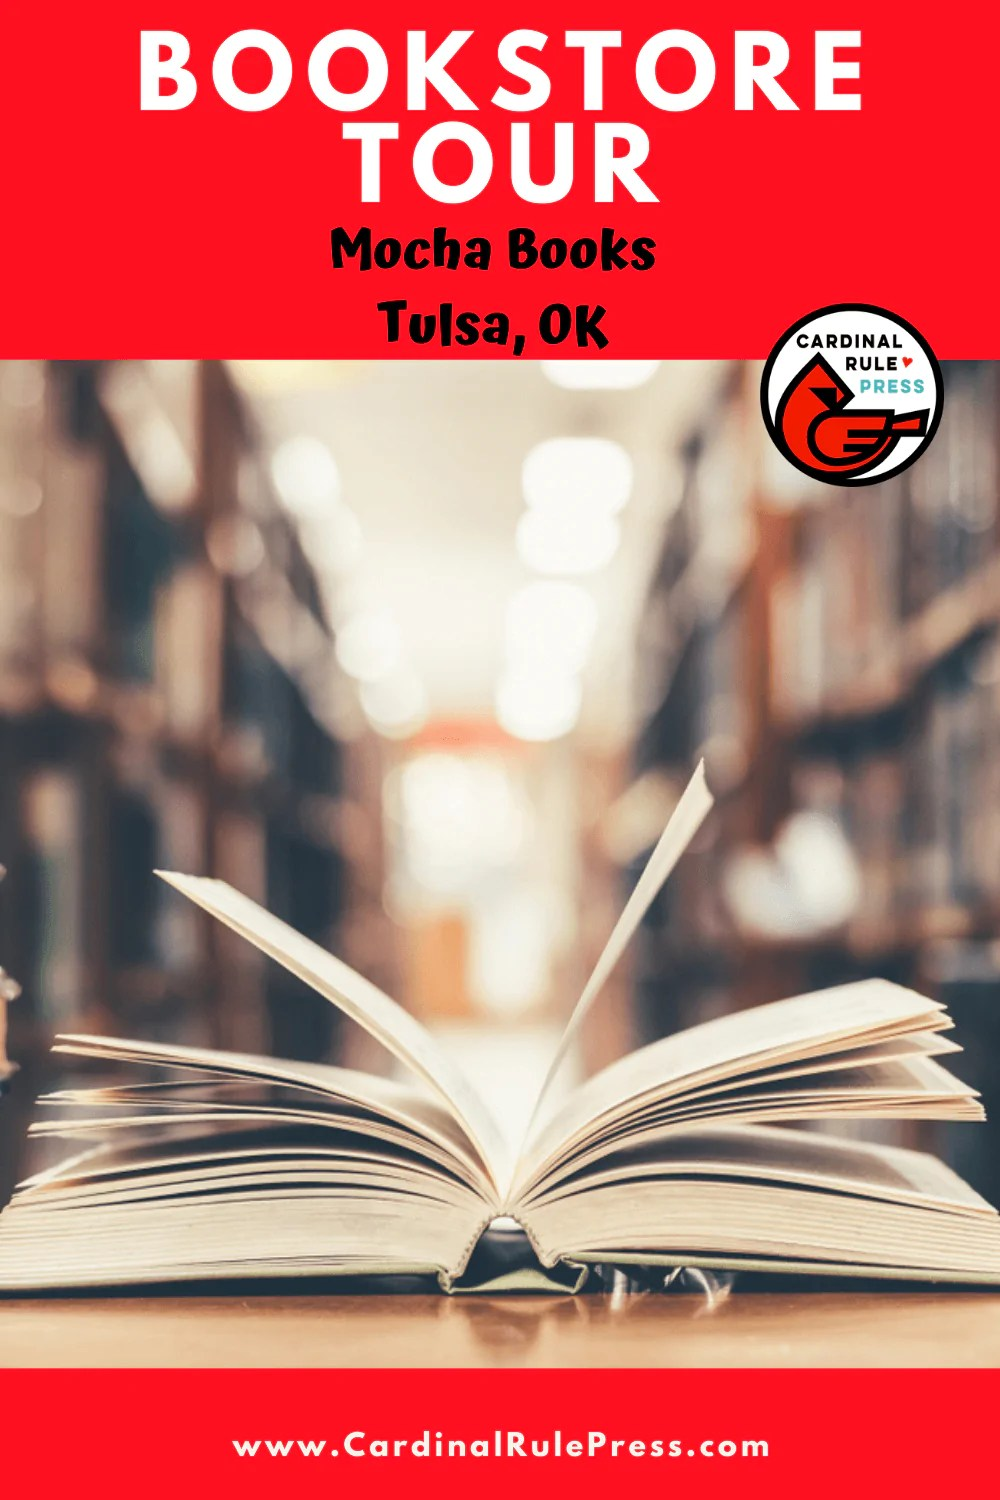 Summer Bookstore & Library Tour: Mocha Books in Tulsa, OK